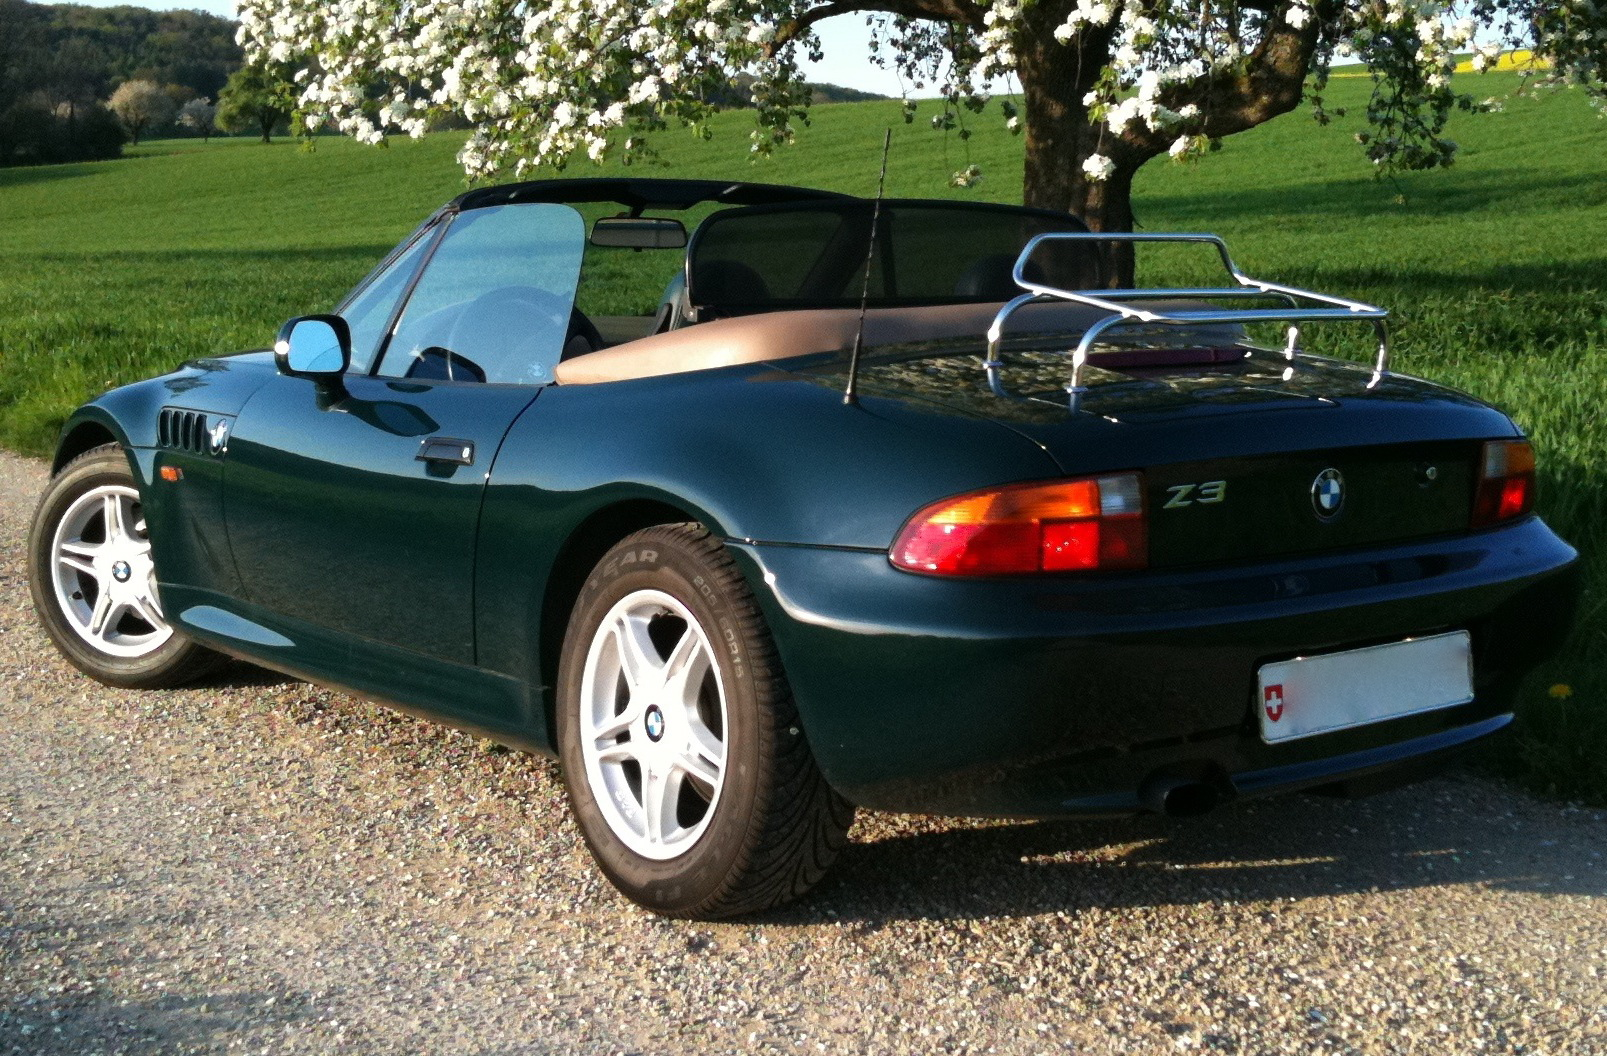 Bmw Z3 Sp 233 Cifications Techniques Et 233 Conomie De Carburant